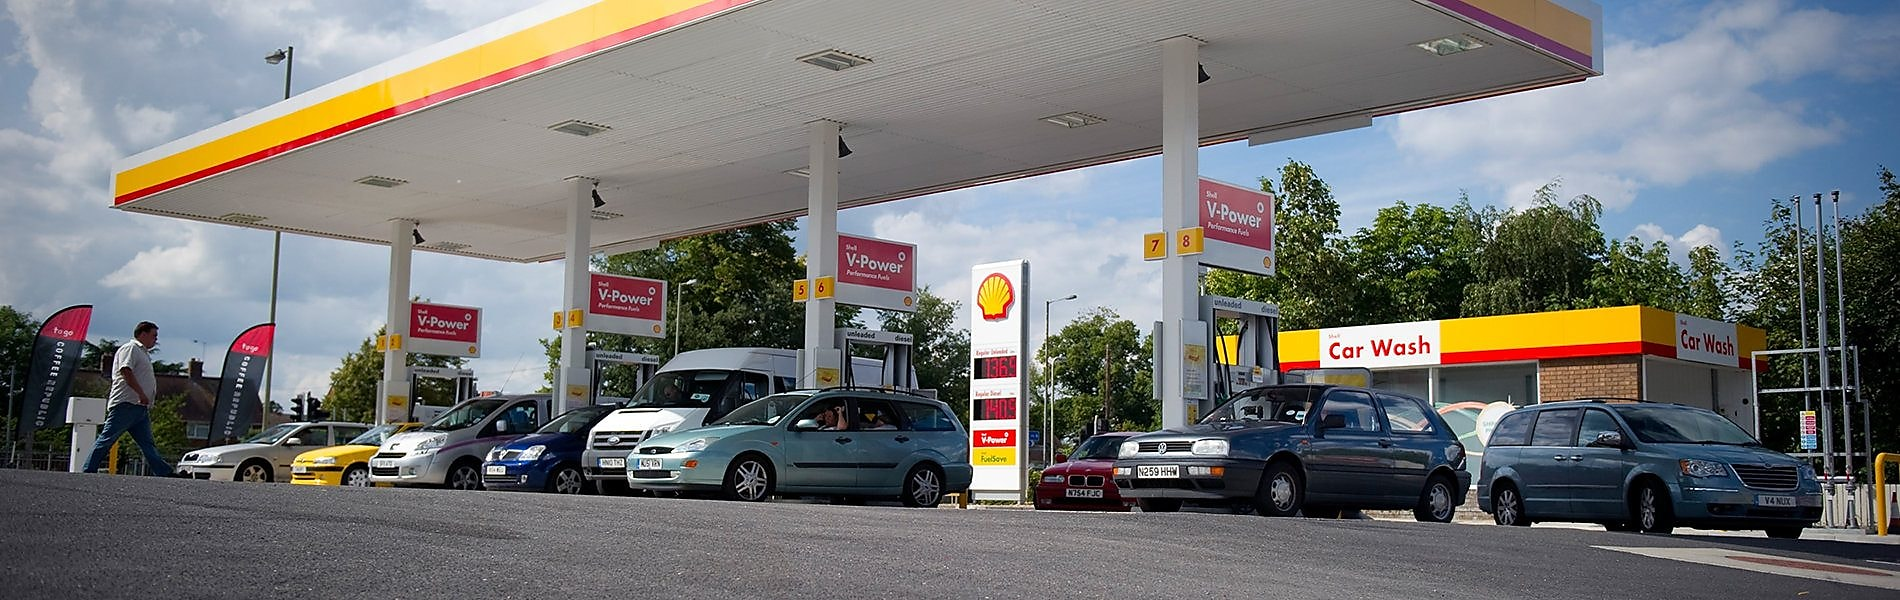 The Closest Shell Gas Station To My Location >> Shell Fuel Card Station Locator Shell United Kingdom